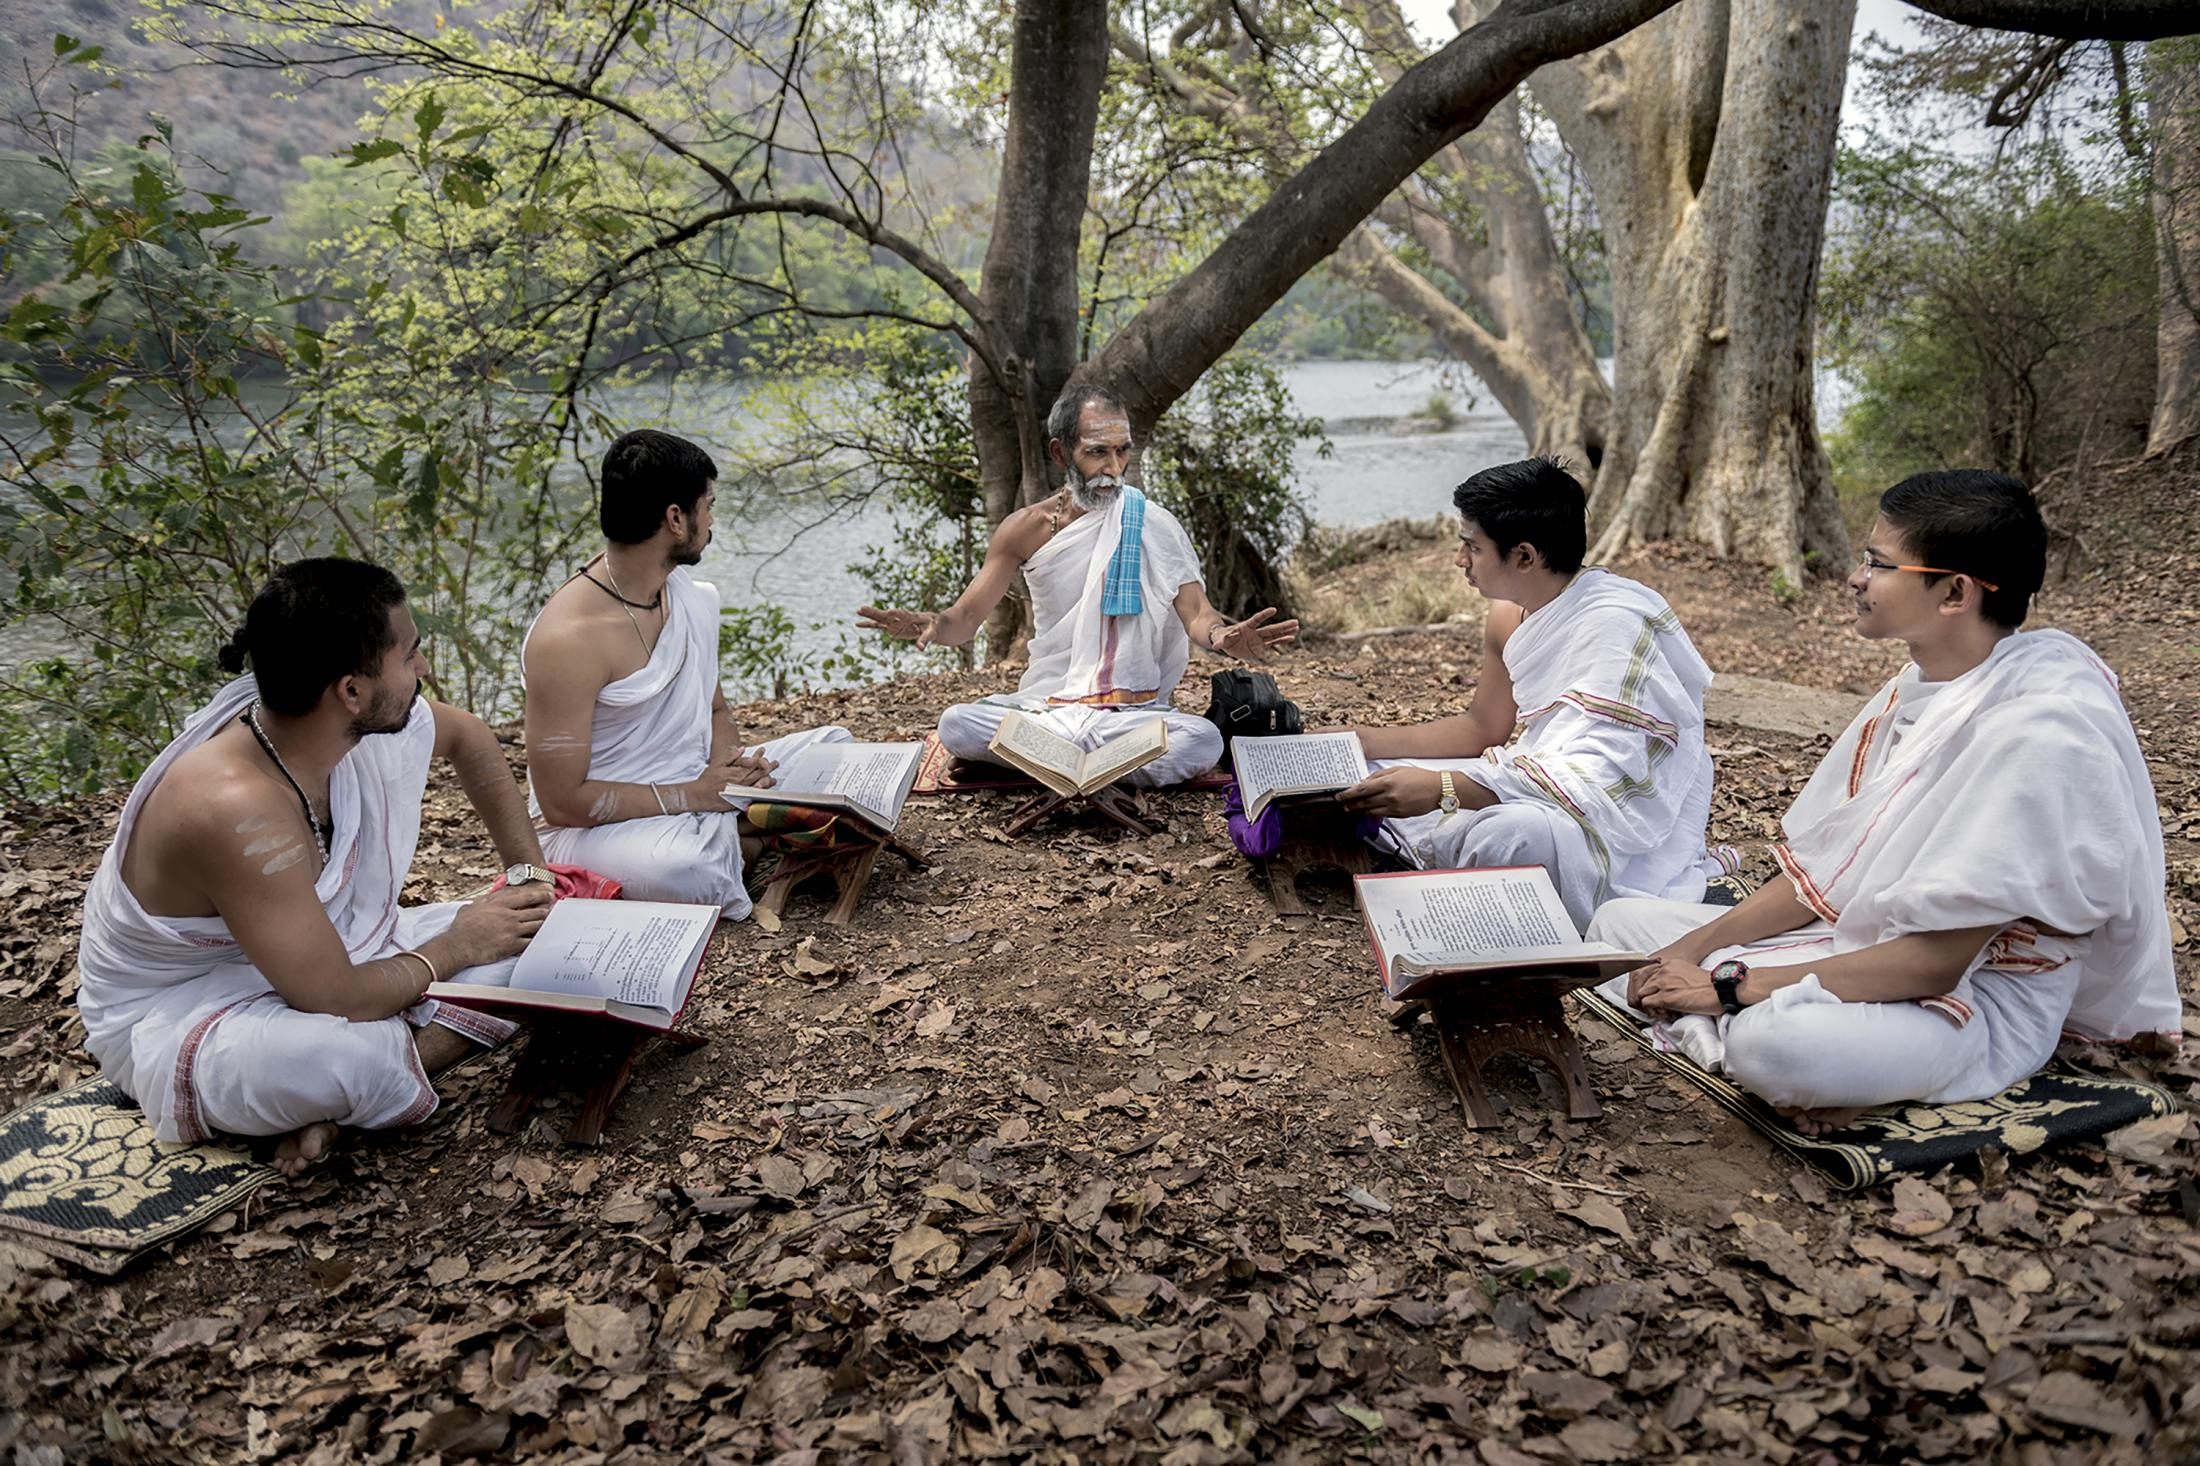 Vedic Guru teaches Yajurveda to senior students of Gurukula. The early Vedic teachers attached great importance to studying under trees.